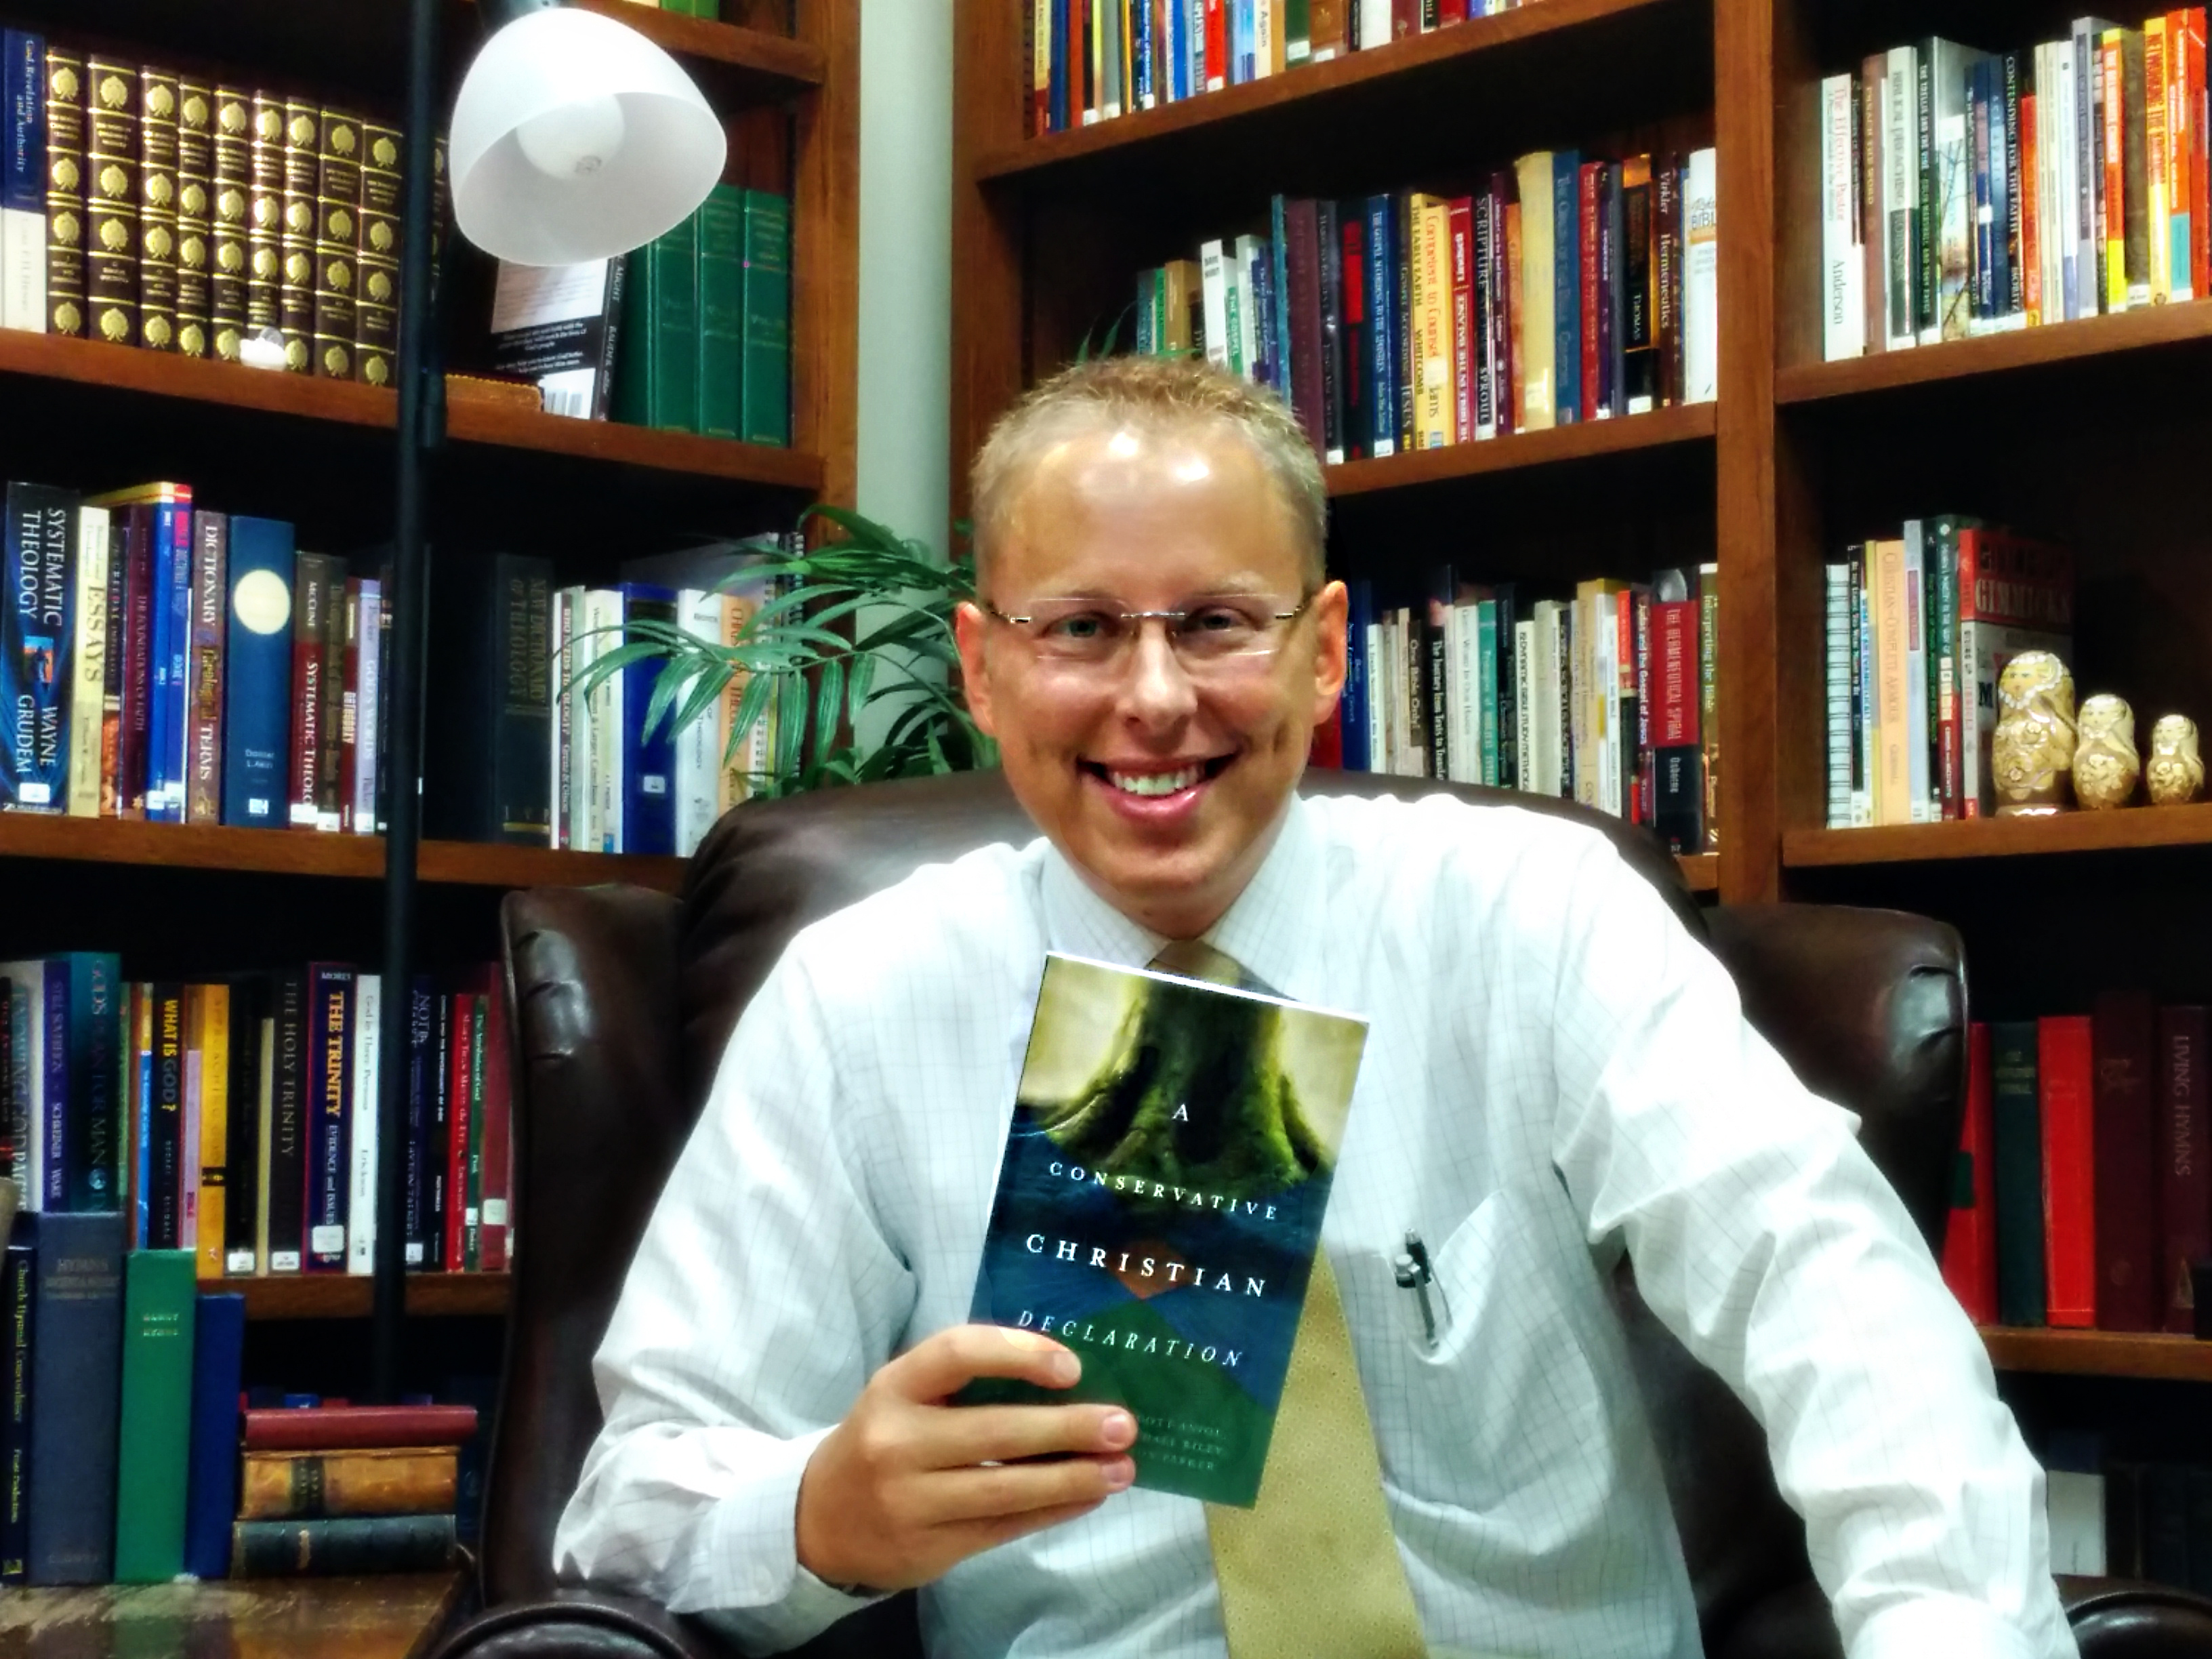 Announcing the publication of A Conservative Christian Declaration!